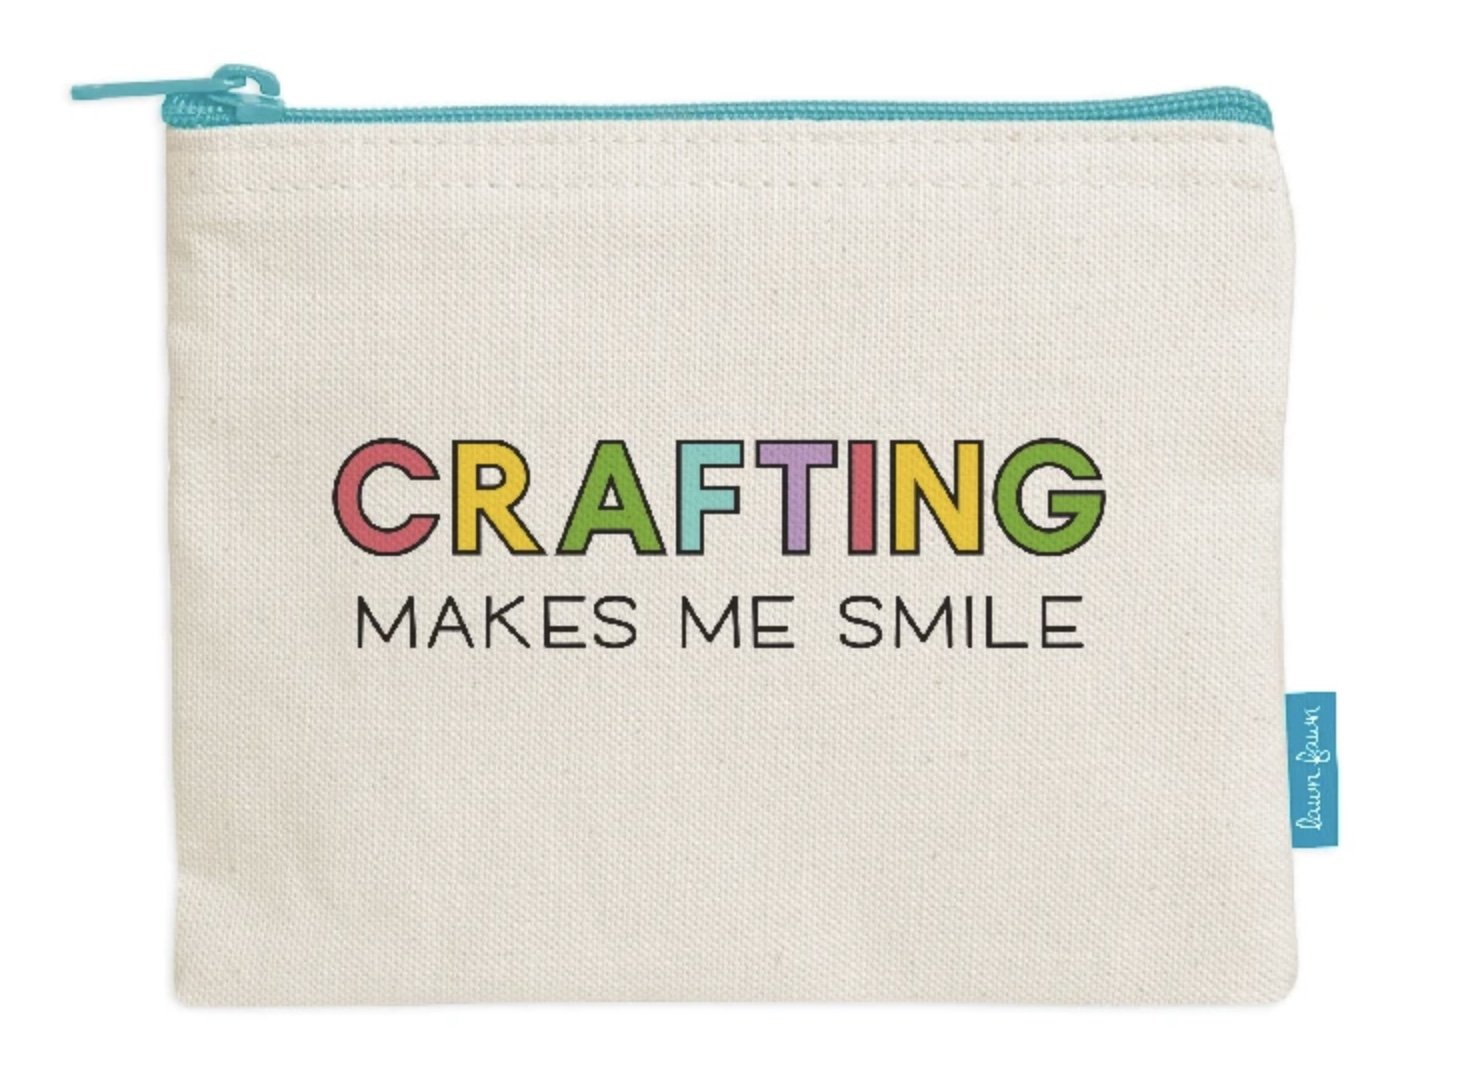 Lawn Fawn Tote Bag - Zipper Pouch - Crafting Makes Me Smile